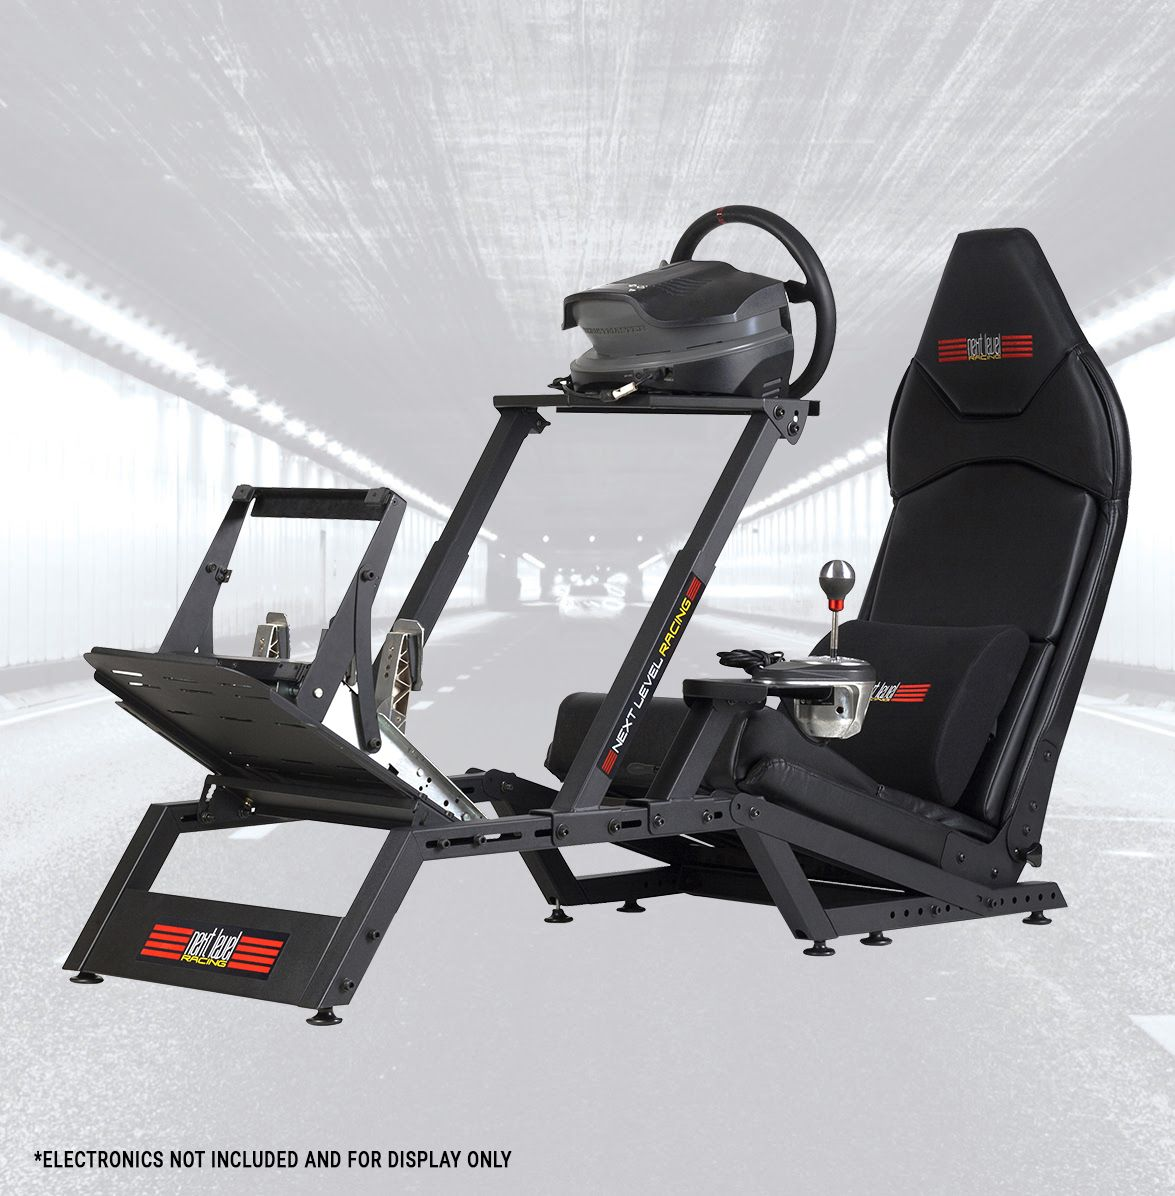 Next Level Racing FGT Formula and GT Simulator Cockpit